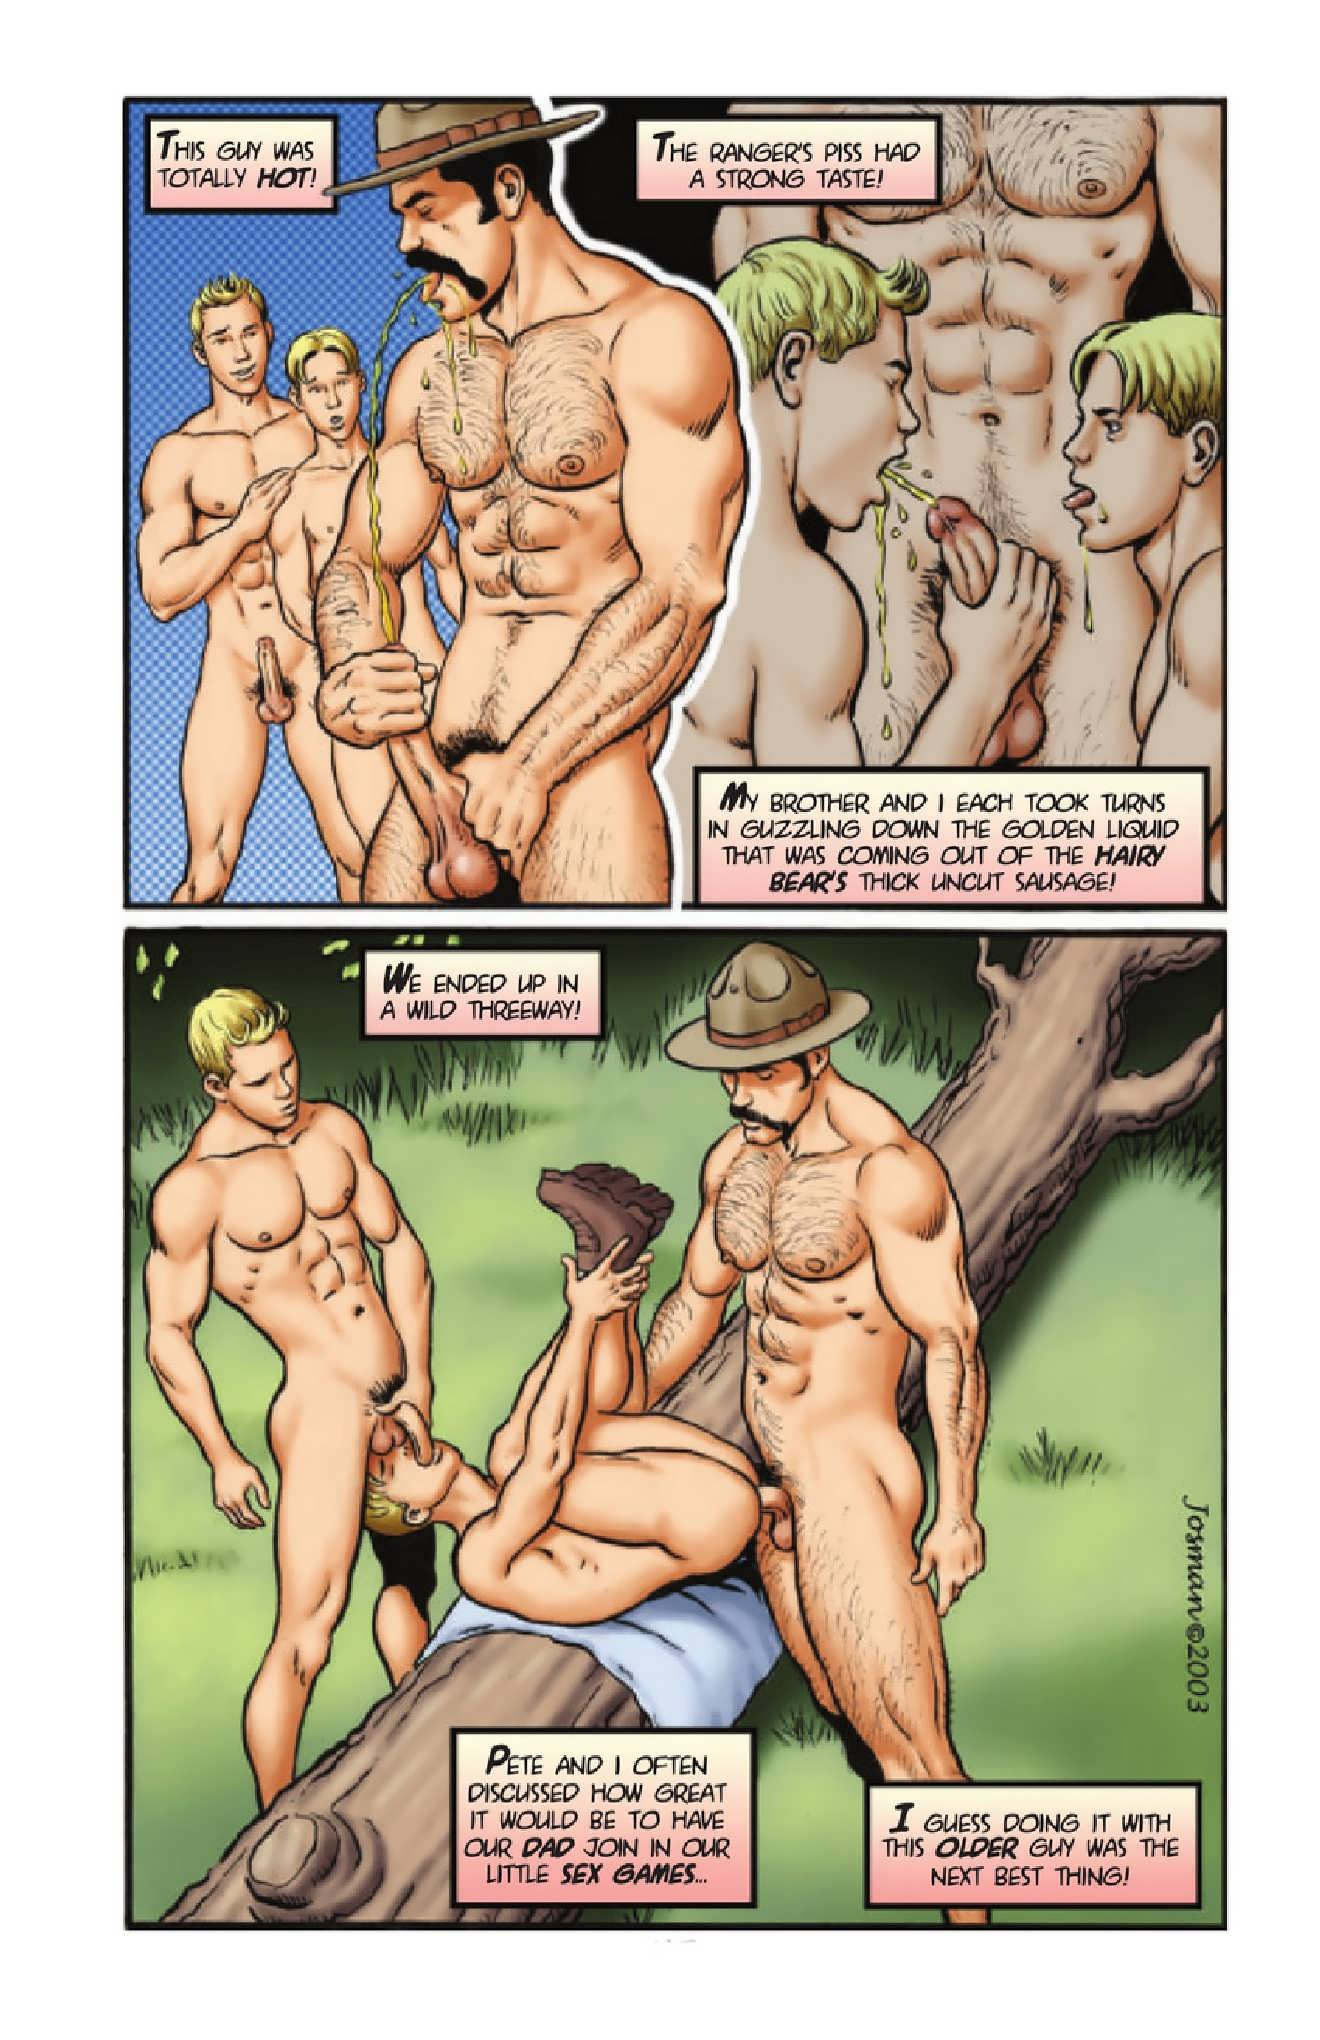 Hot gay cartoon sex